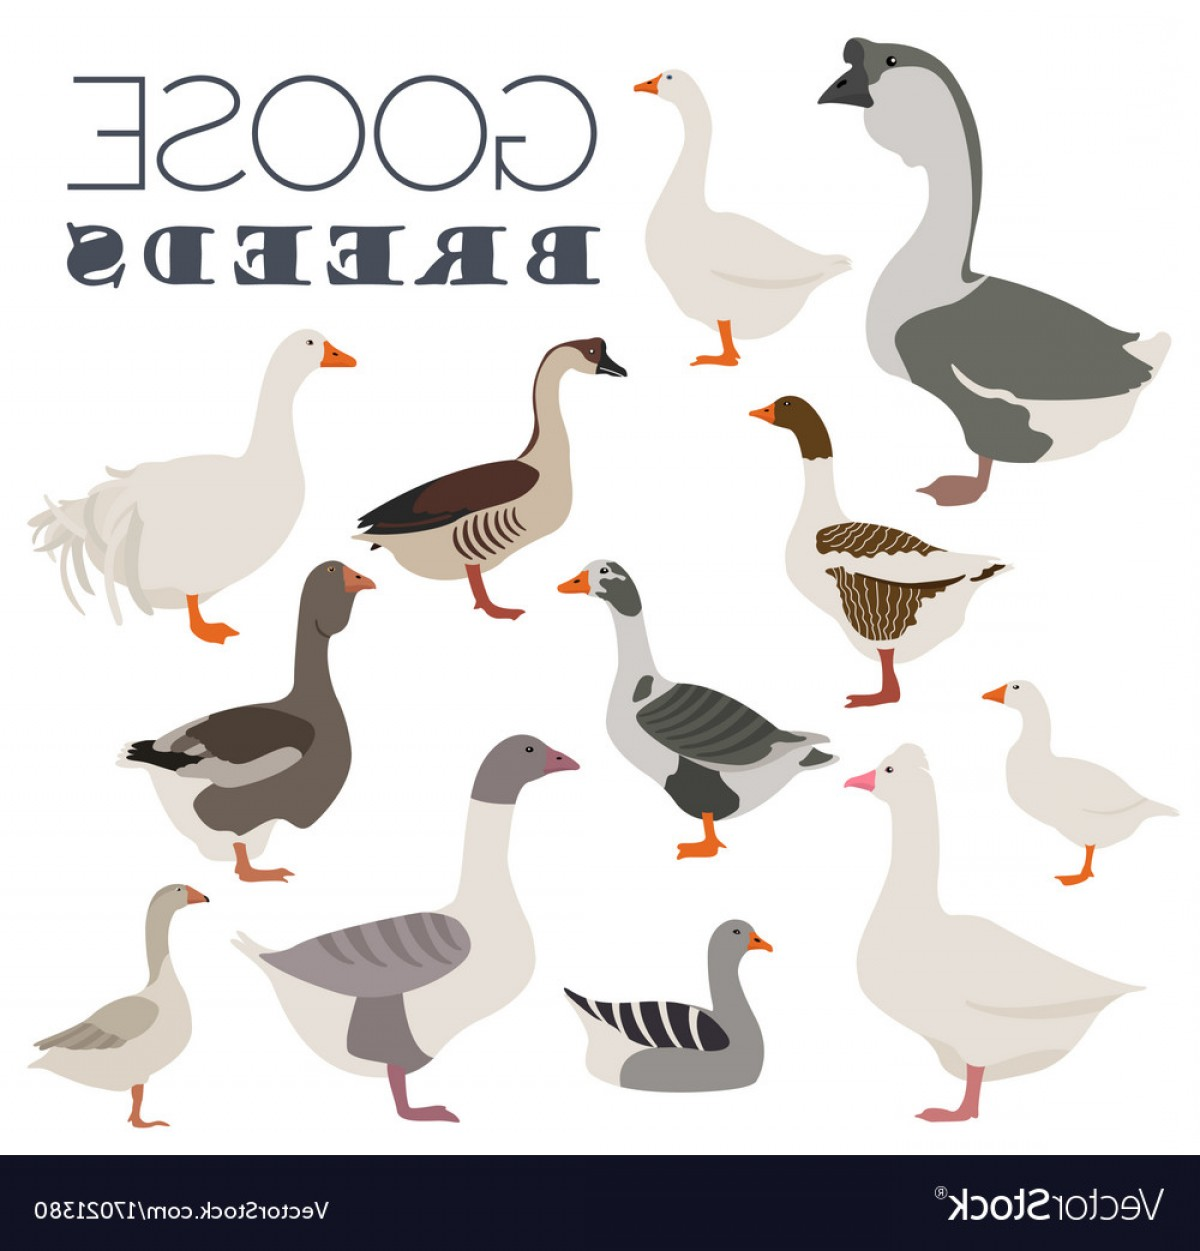 Geese Vector: Poultry Farming Goose Breeds Icon Set Flat Design Vector